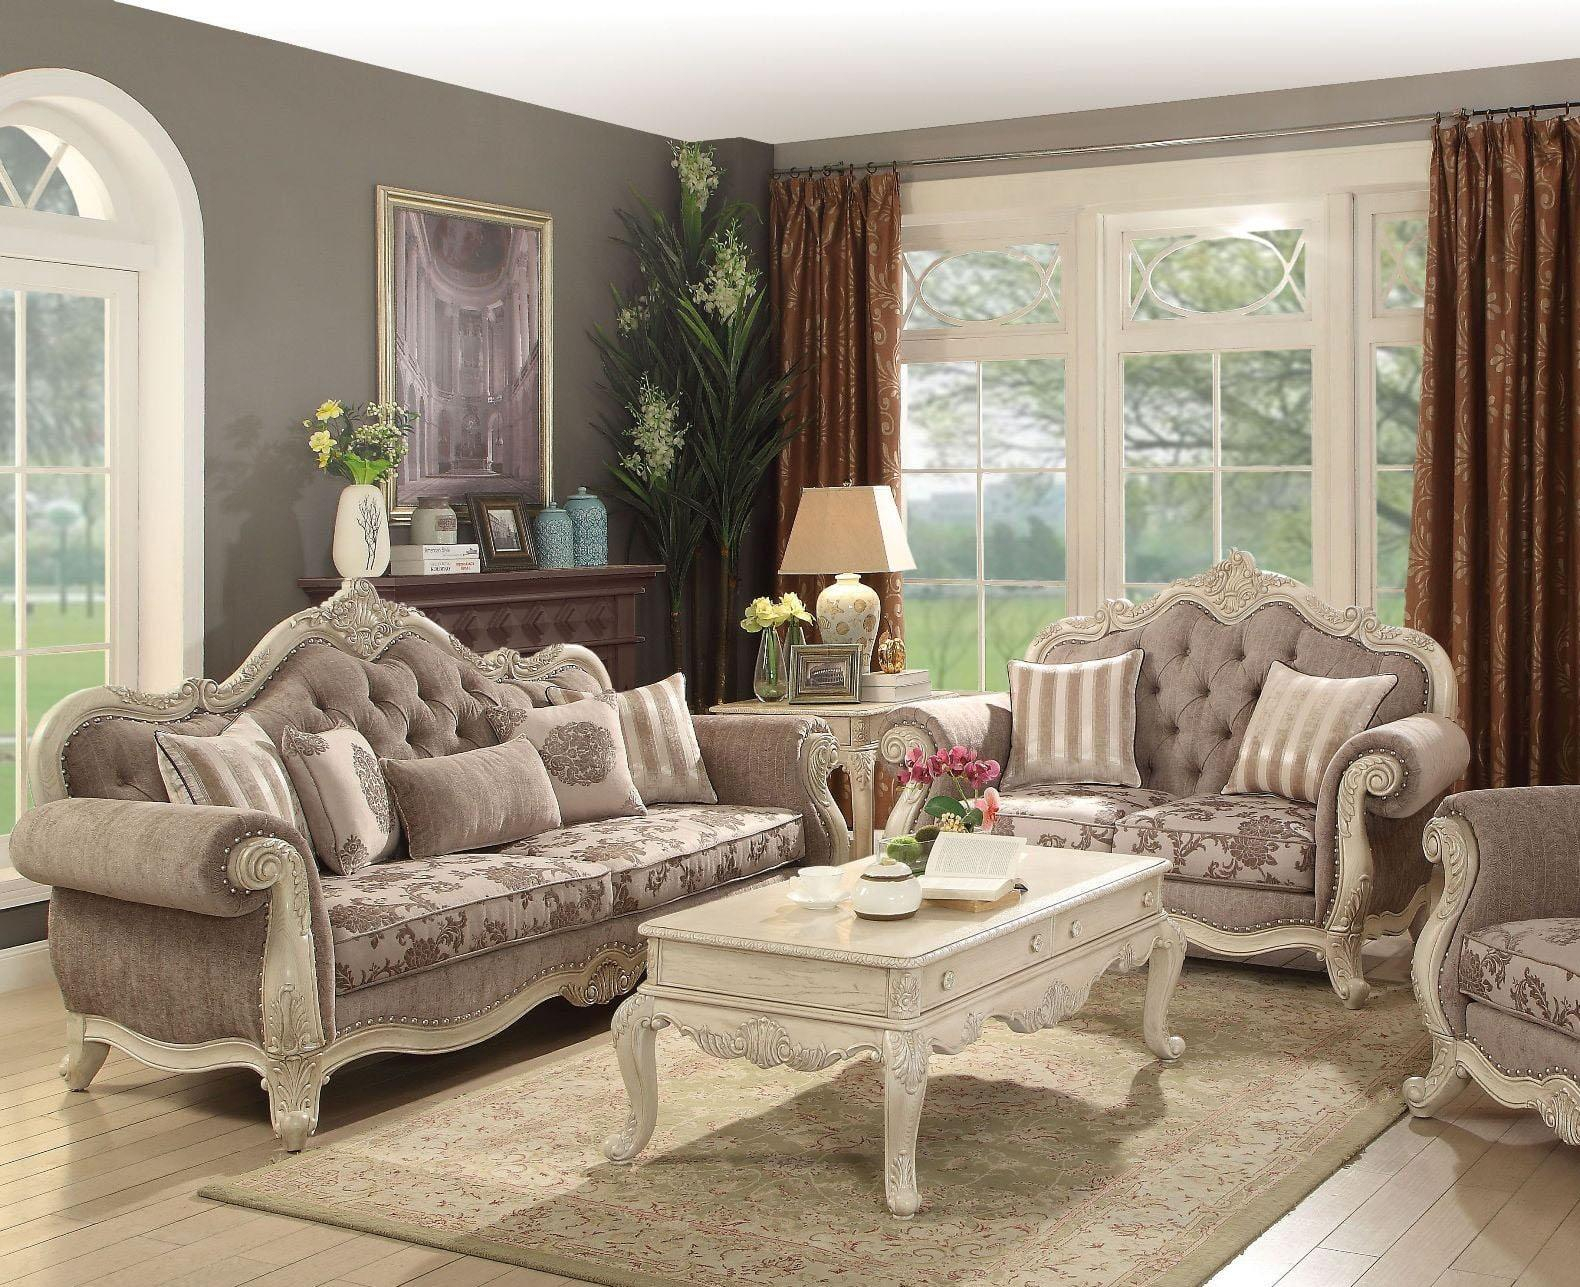 Antique White Gray Living Room Set 2pc Classic Acme Furniture 56020 Ragenardus throughout 12 Clever Ways How to Build All White Living Room Set